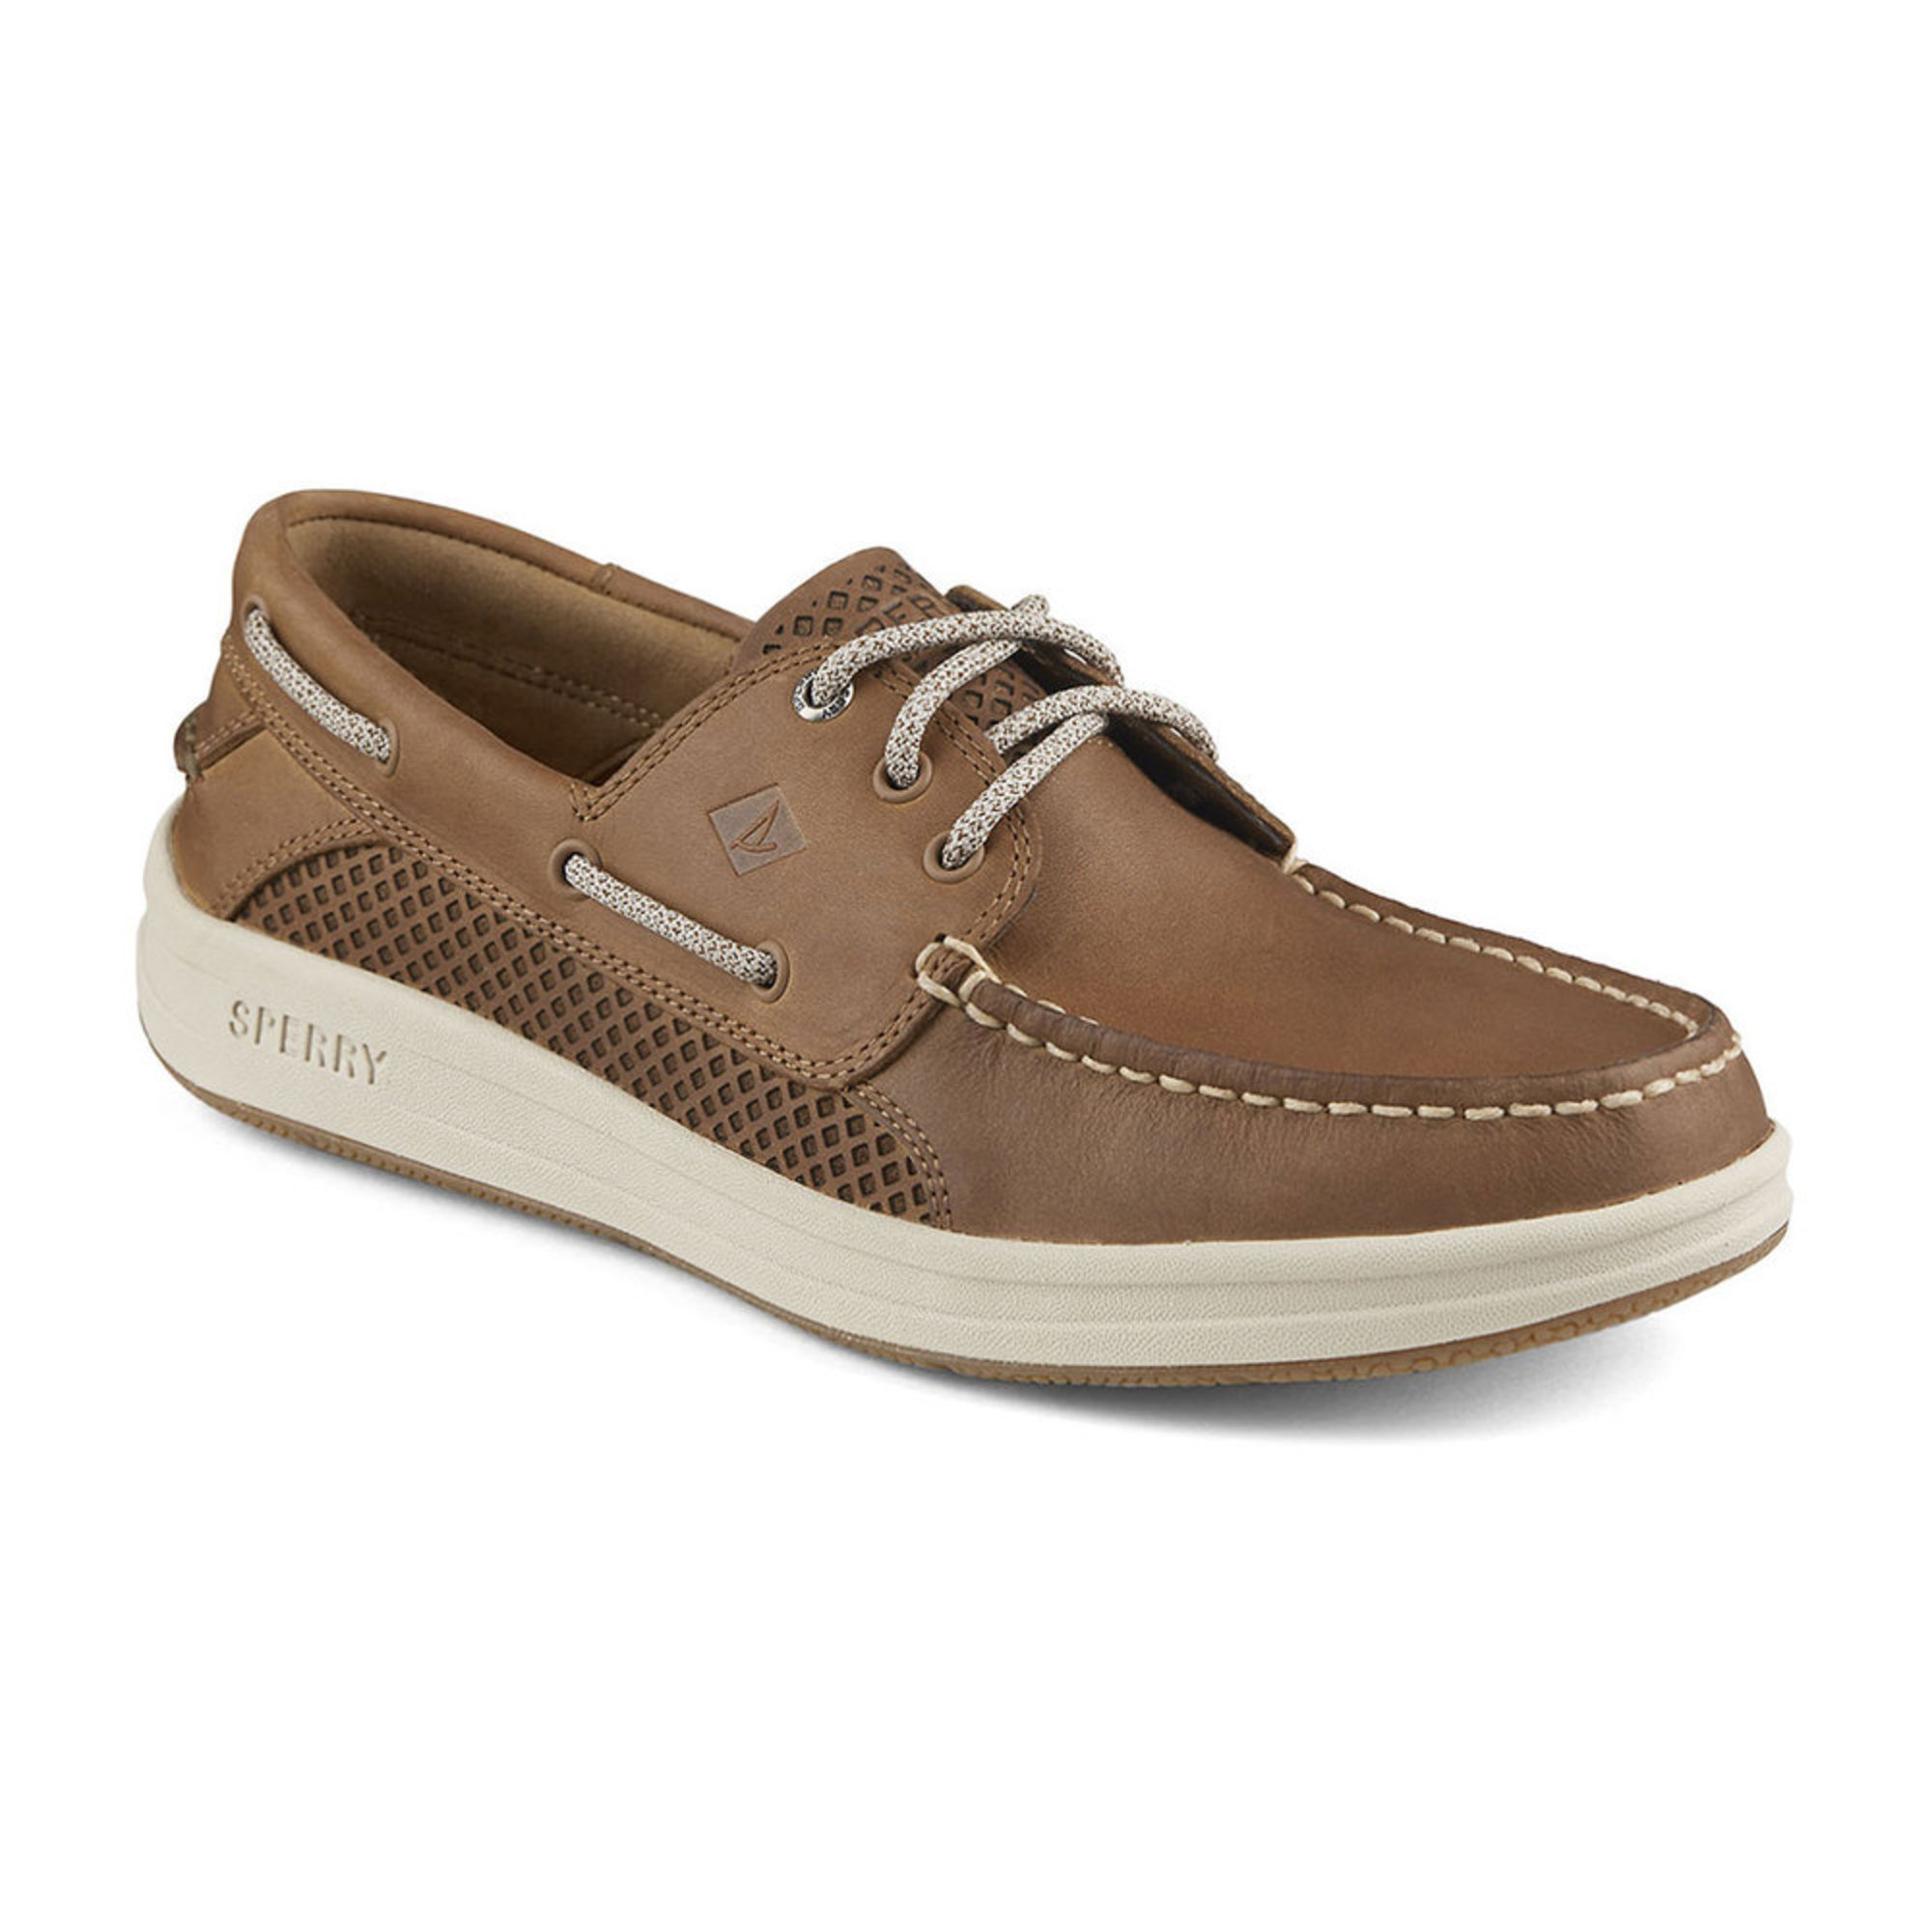 sperry top sider gamefish 3 eye s boat shoe